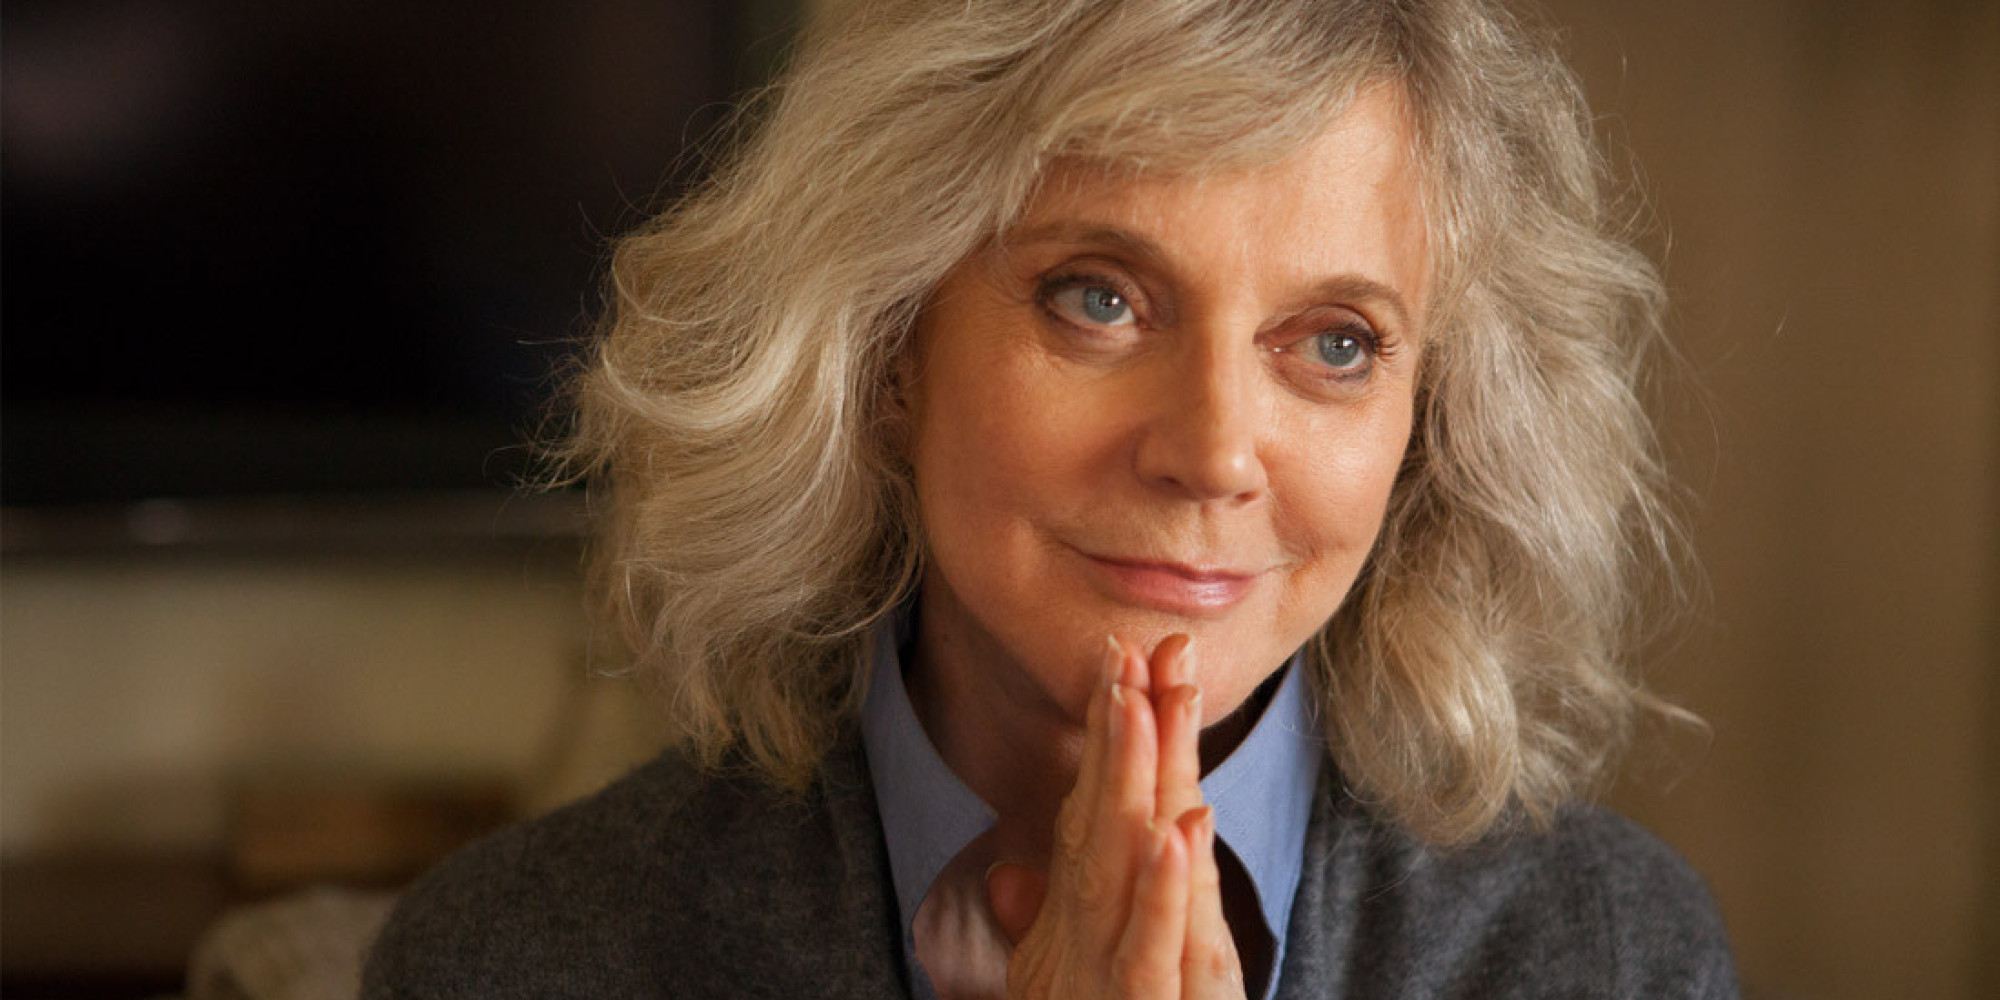 Blythe danner says 35 in hollywood used to be old not anymore